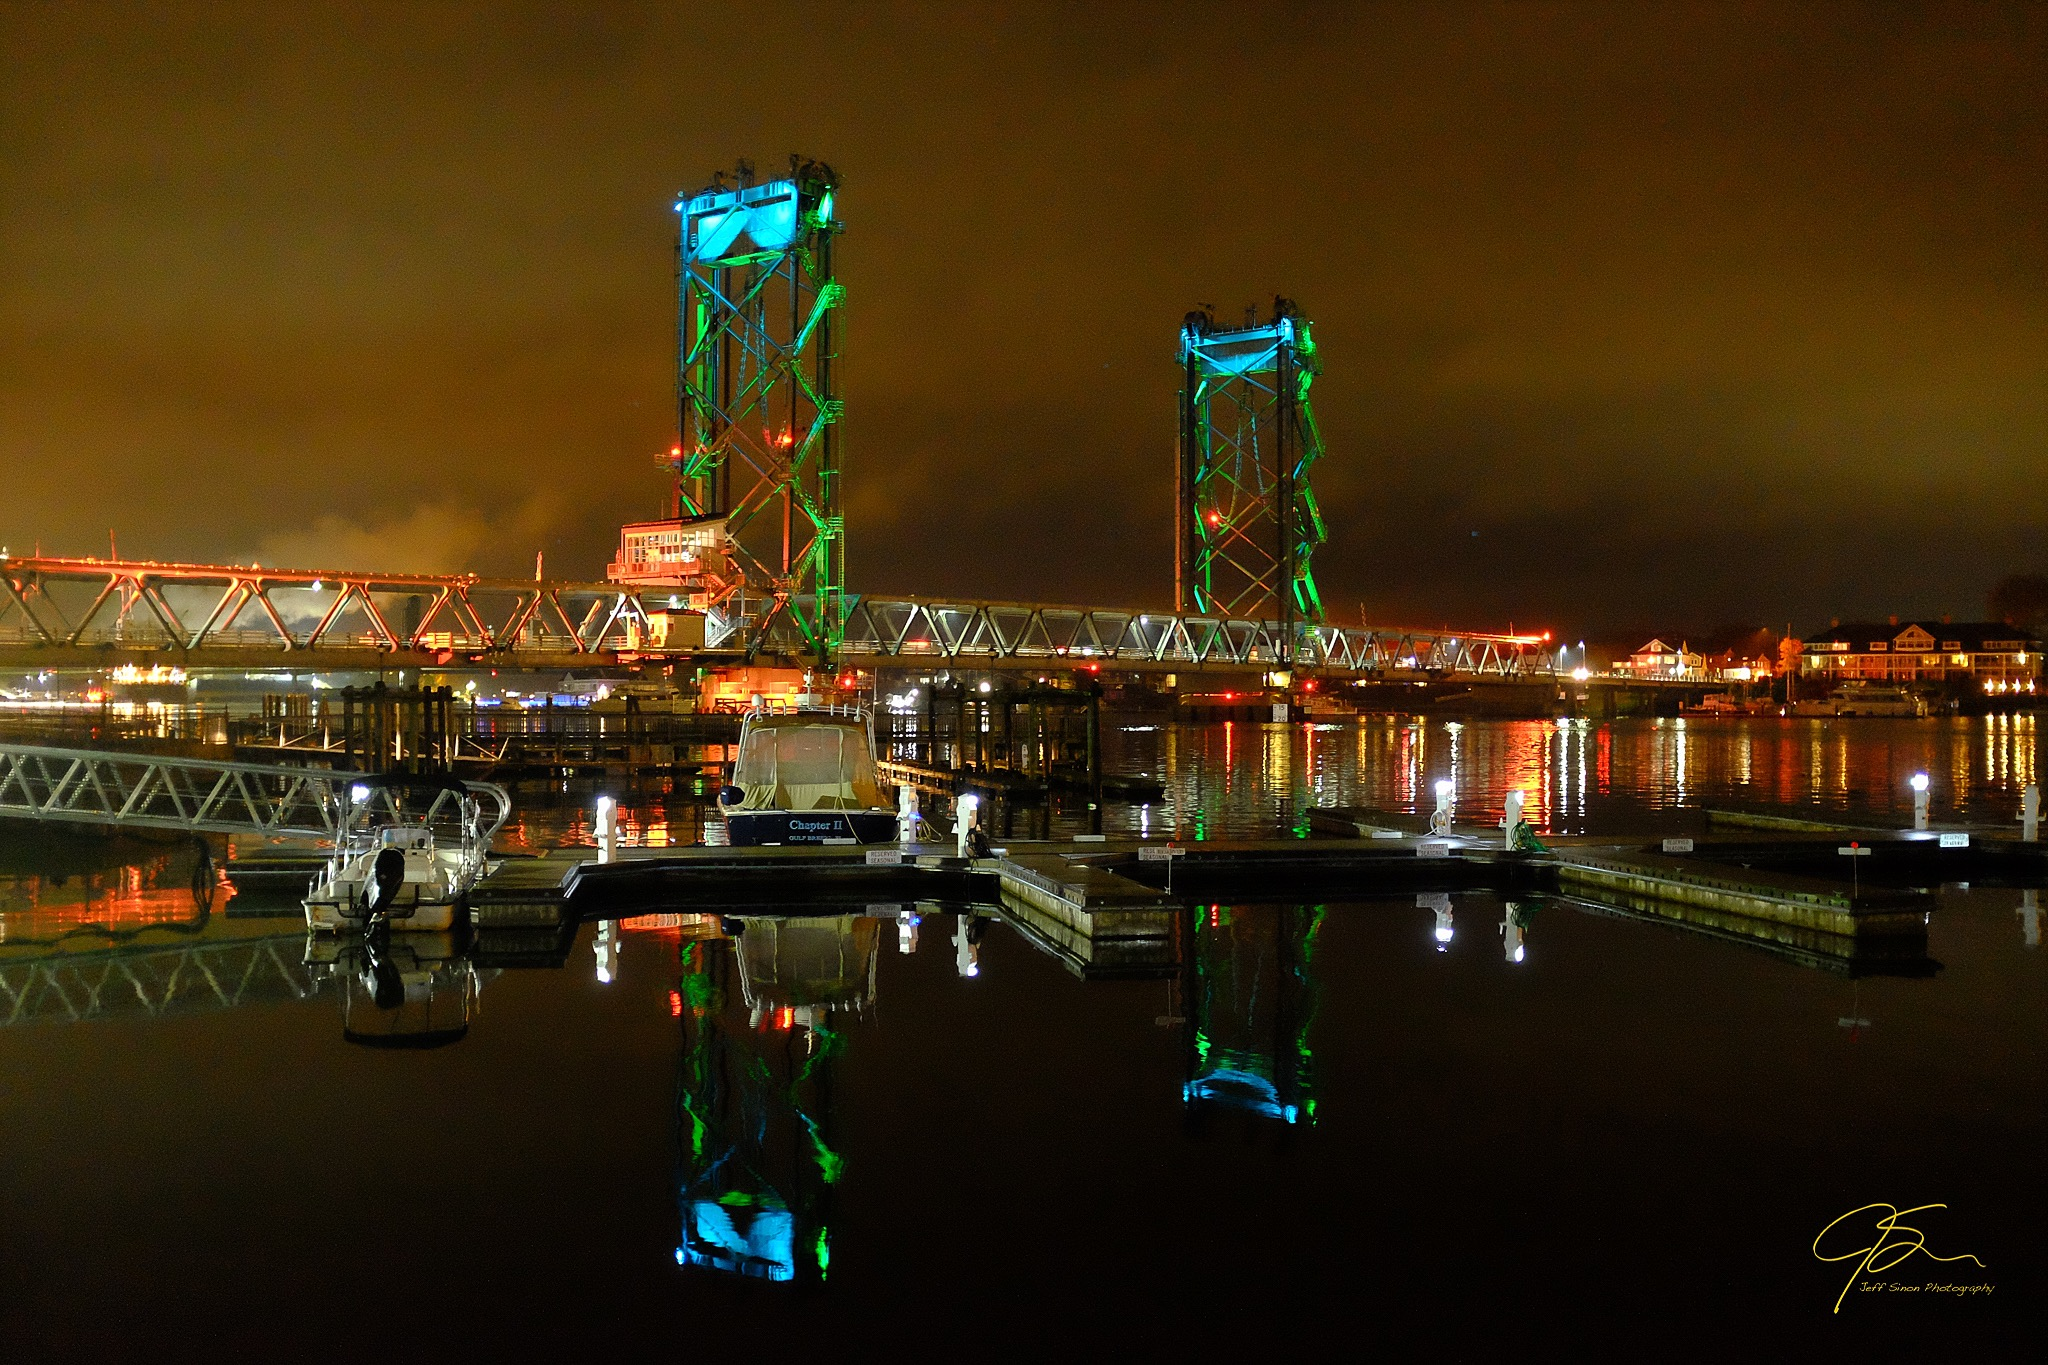 memorial bridge at night with the bridge towers lit in blue light.